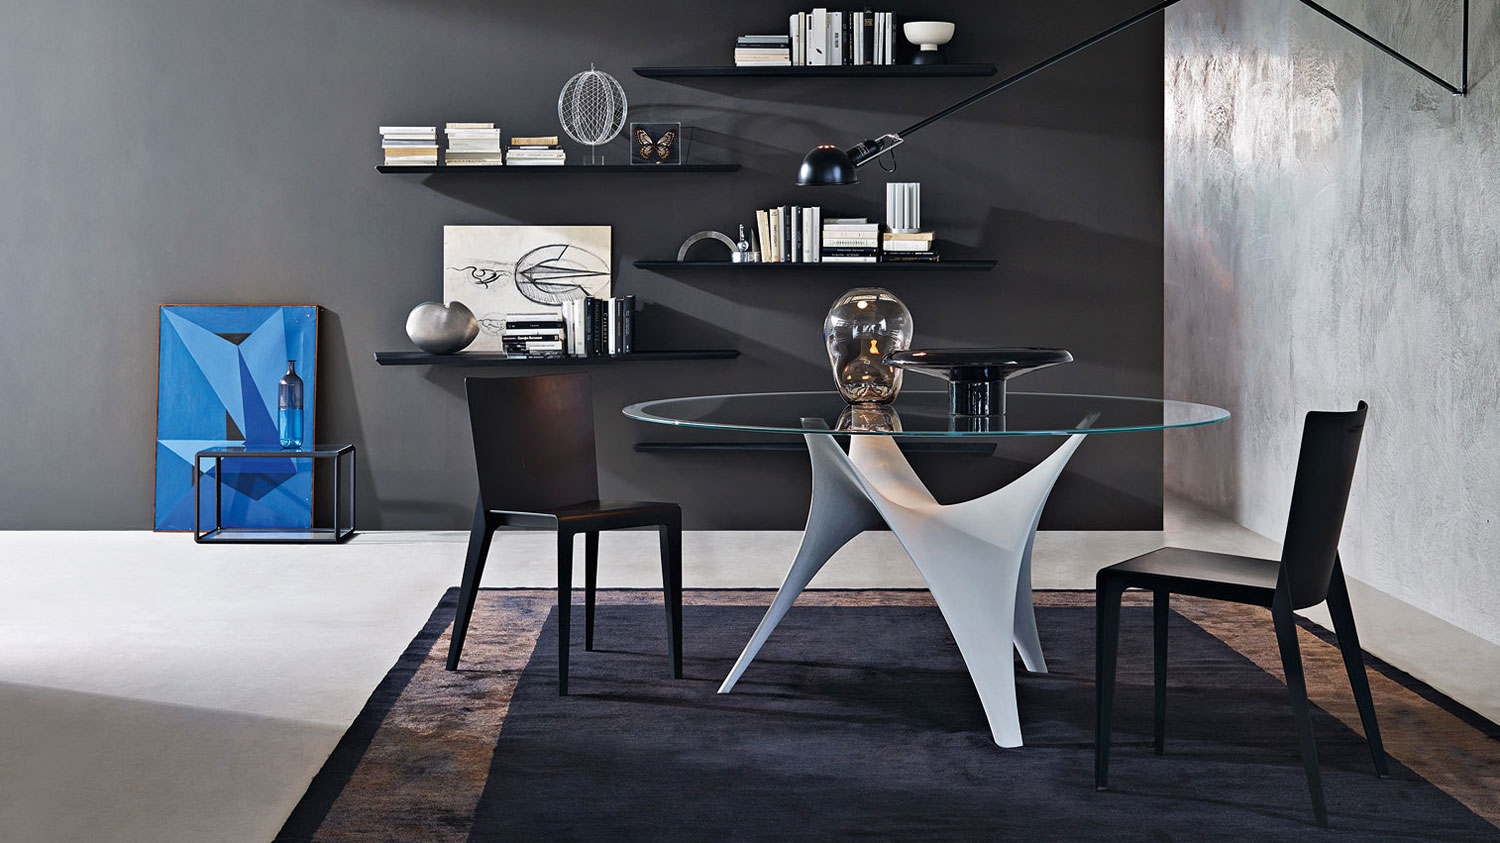 Molteni c arc table for Material table design